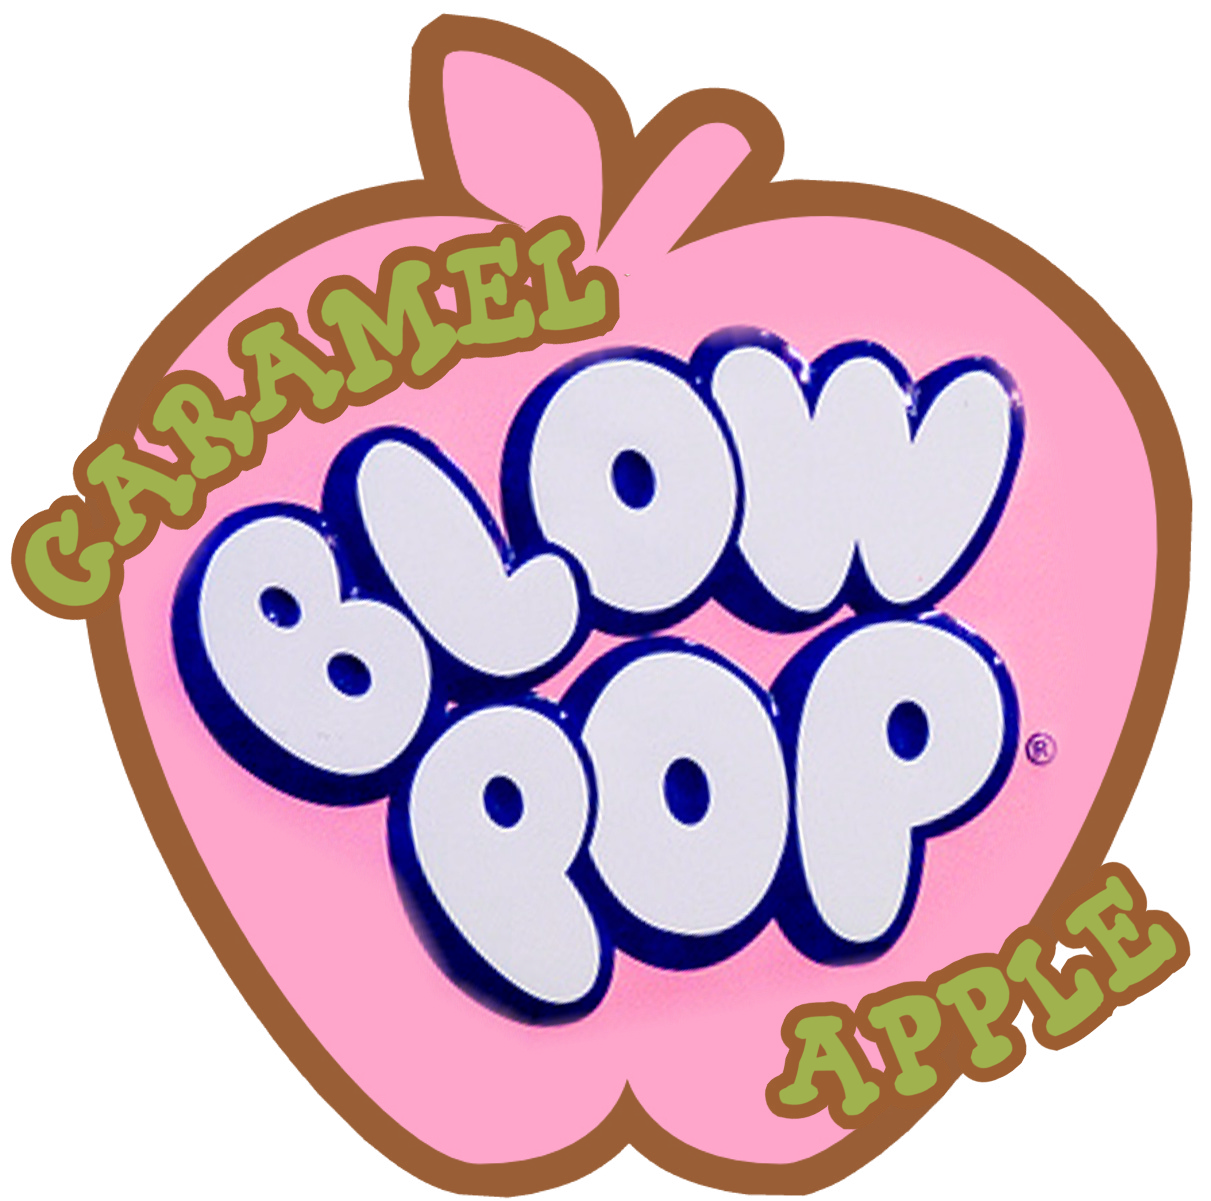 Clipart of caramel apple clipart royalty free Blow pop Logos clipart royalty free